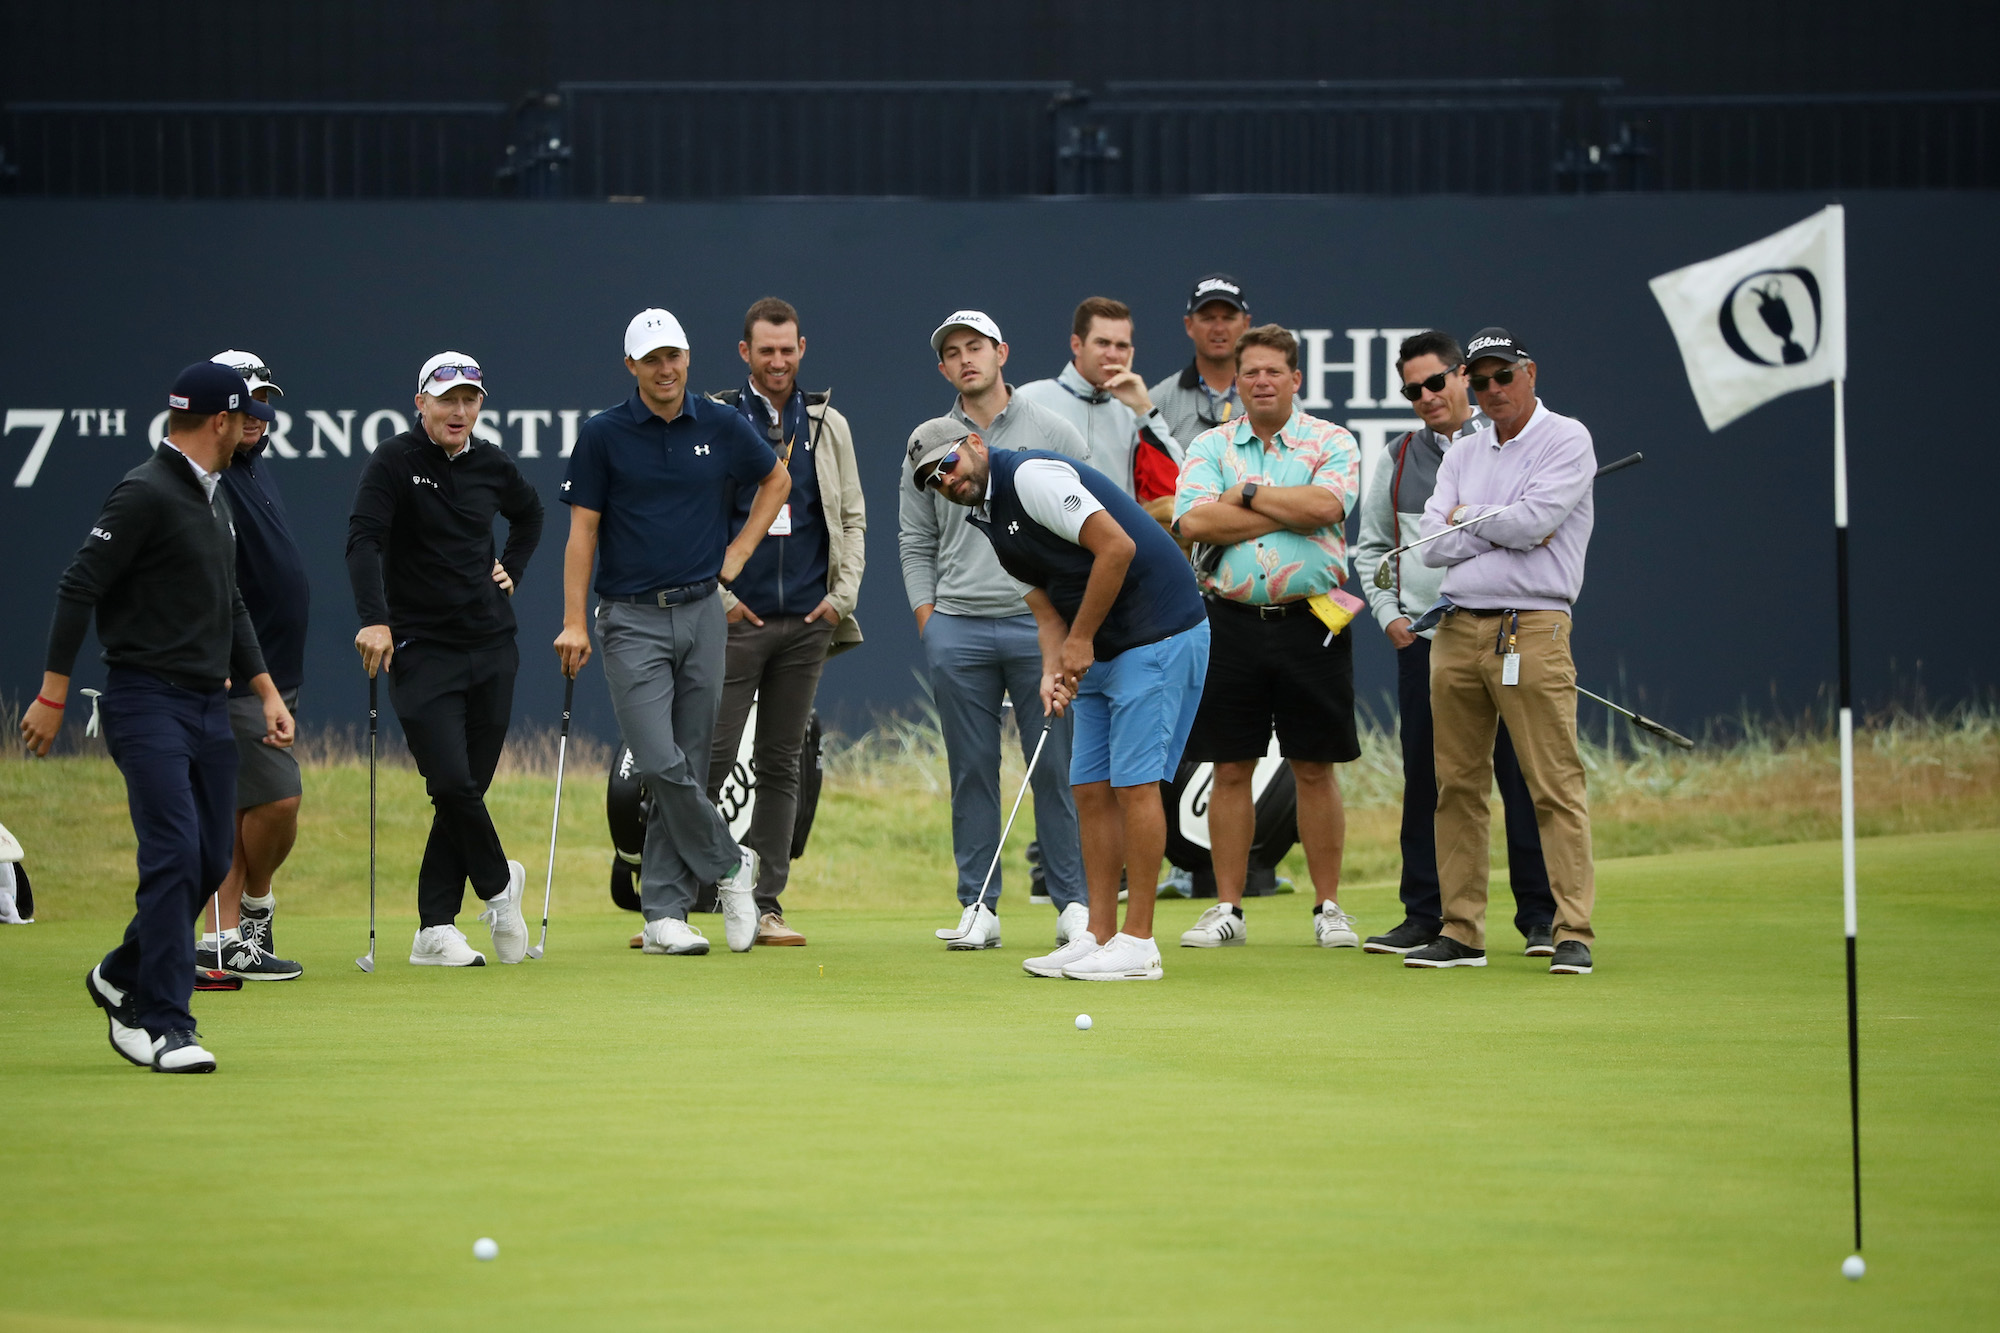 2018 Open Championship: Previews - Michael Greller Attempts a Putt During the Practice Round